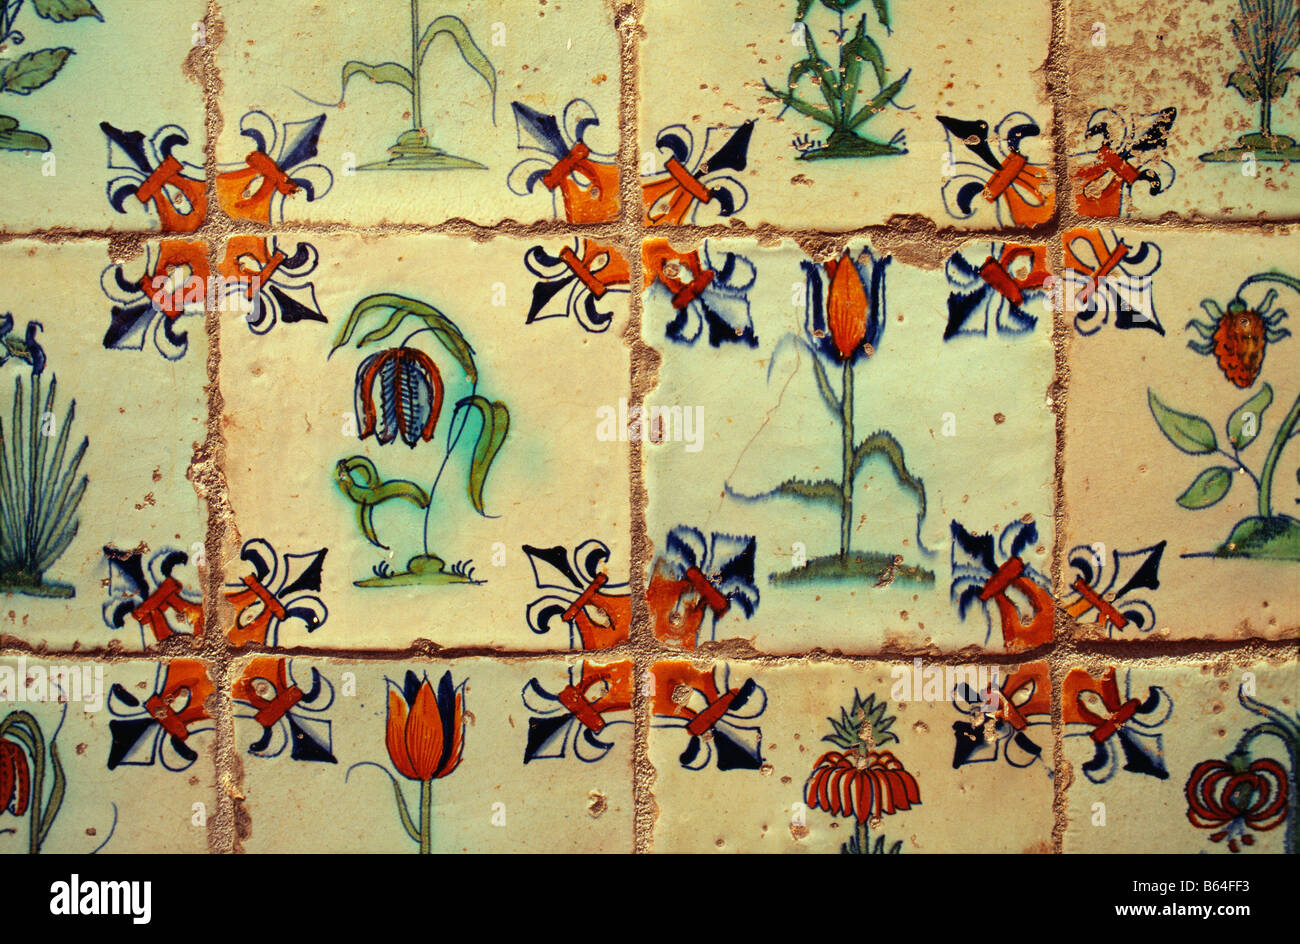 Holland, The Netherlands, Delft. Museum: Lambert van Meerten. Delftware tiles. - Stock Image